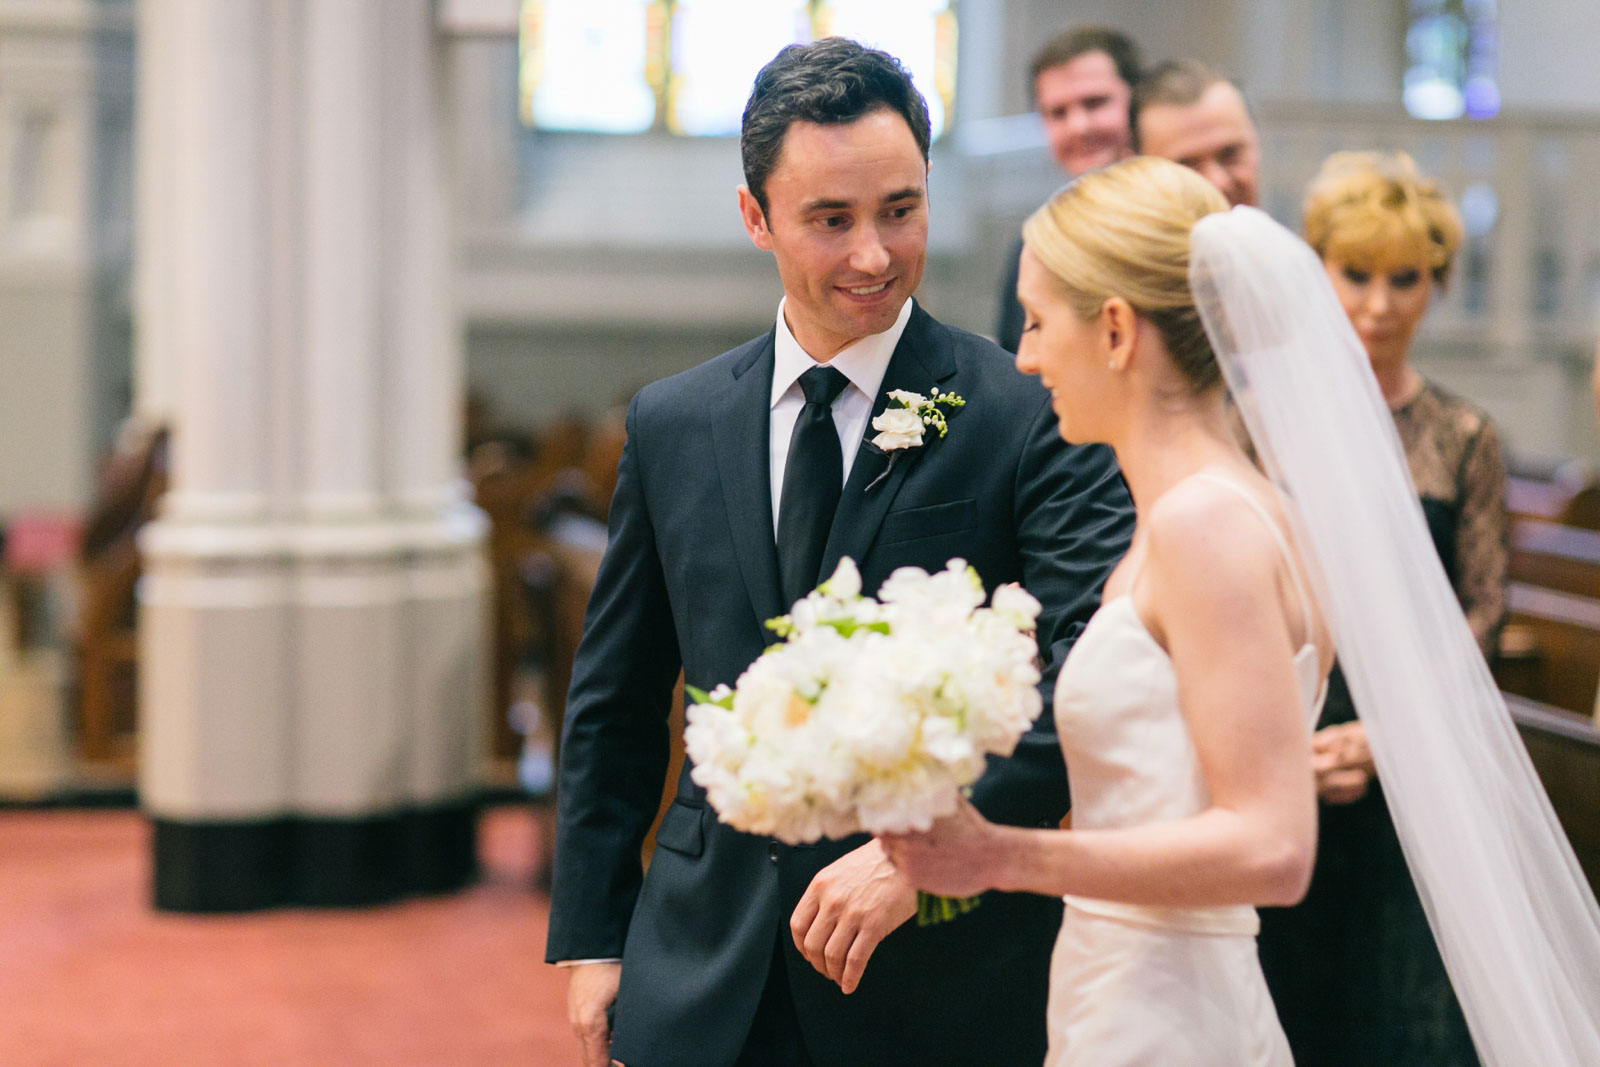 groom gets emotional when seeing bride for the first time during the church wedding ceremony